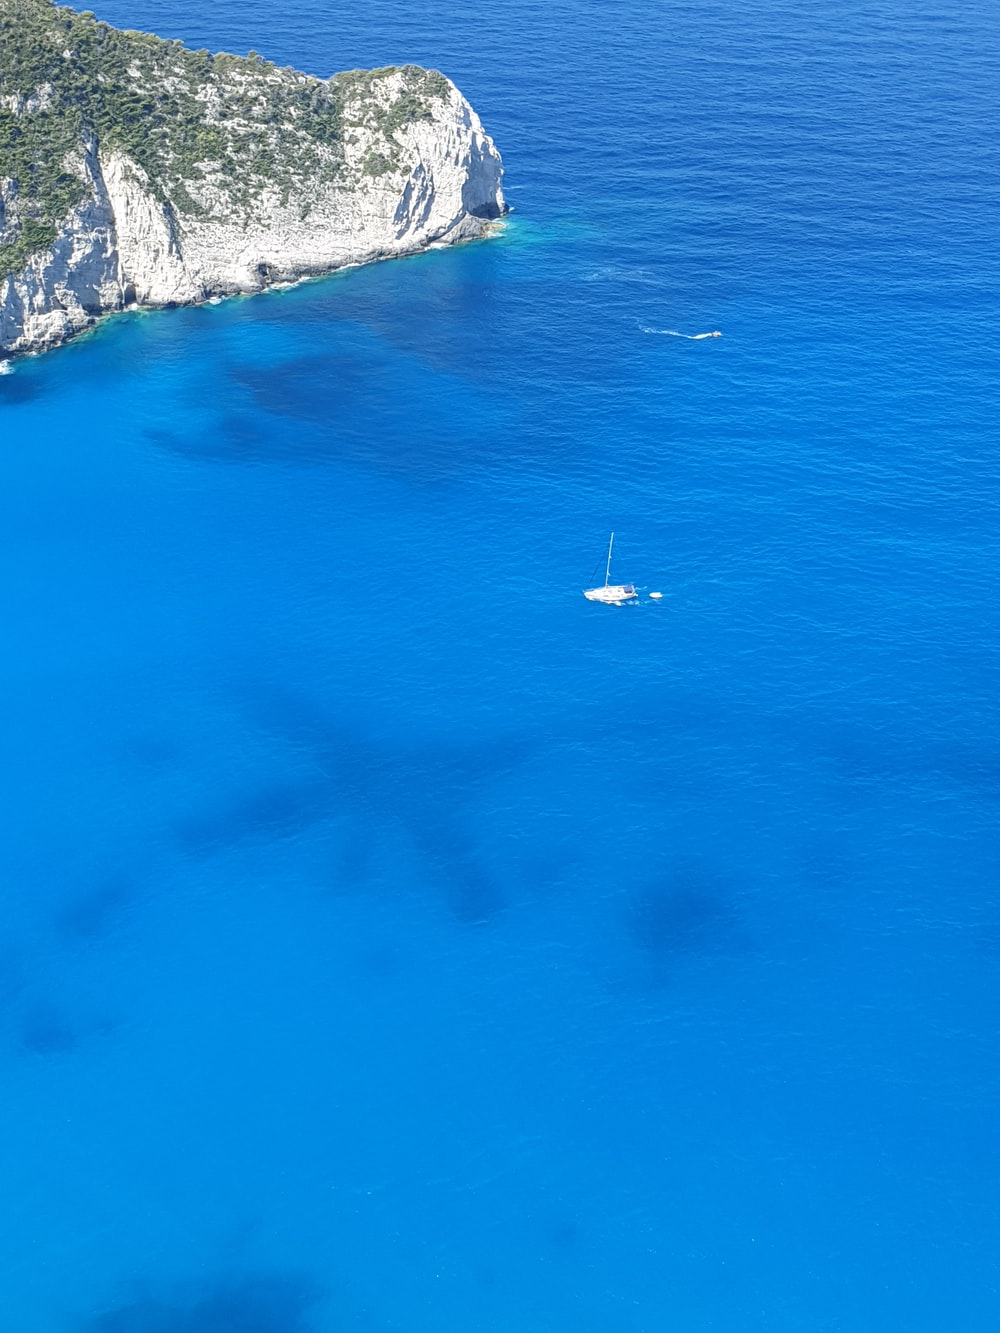 white sailboat in blue sea passing white rock cliff